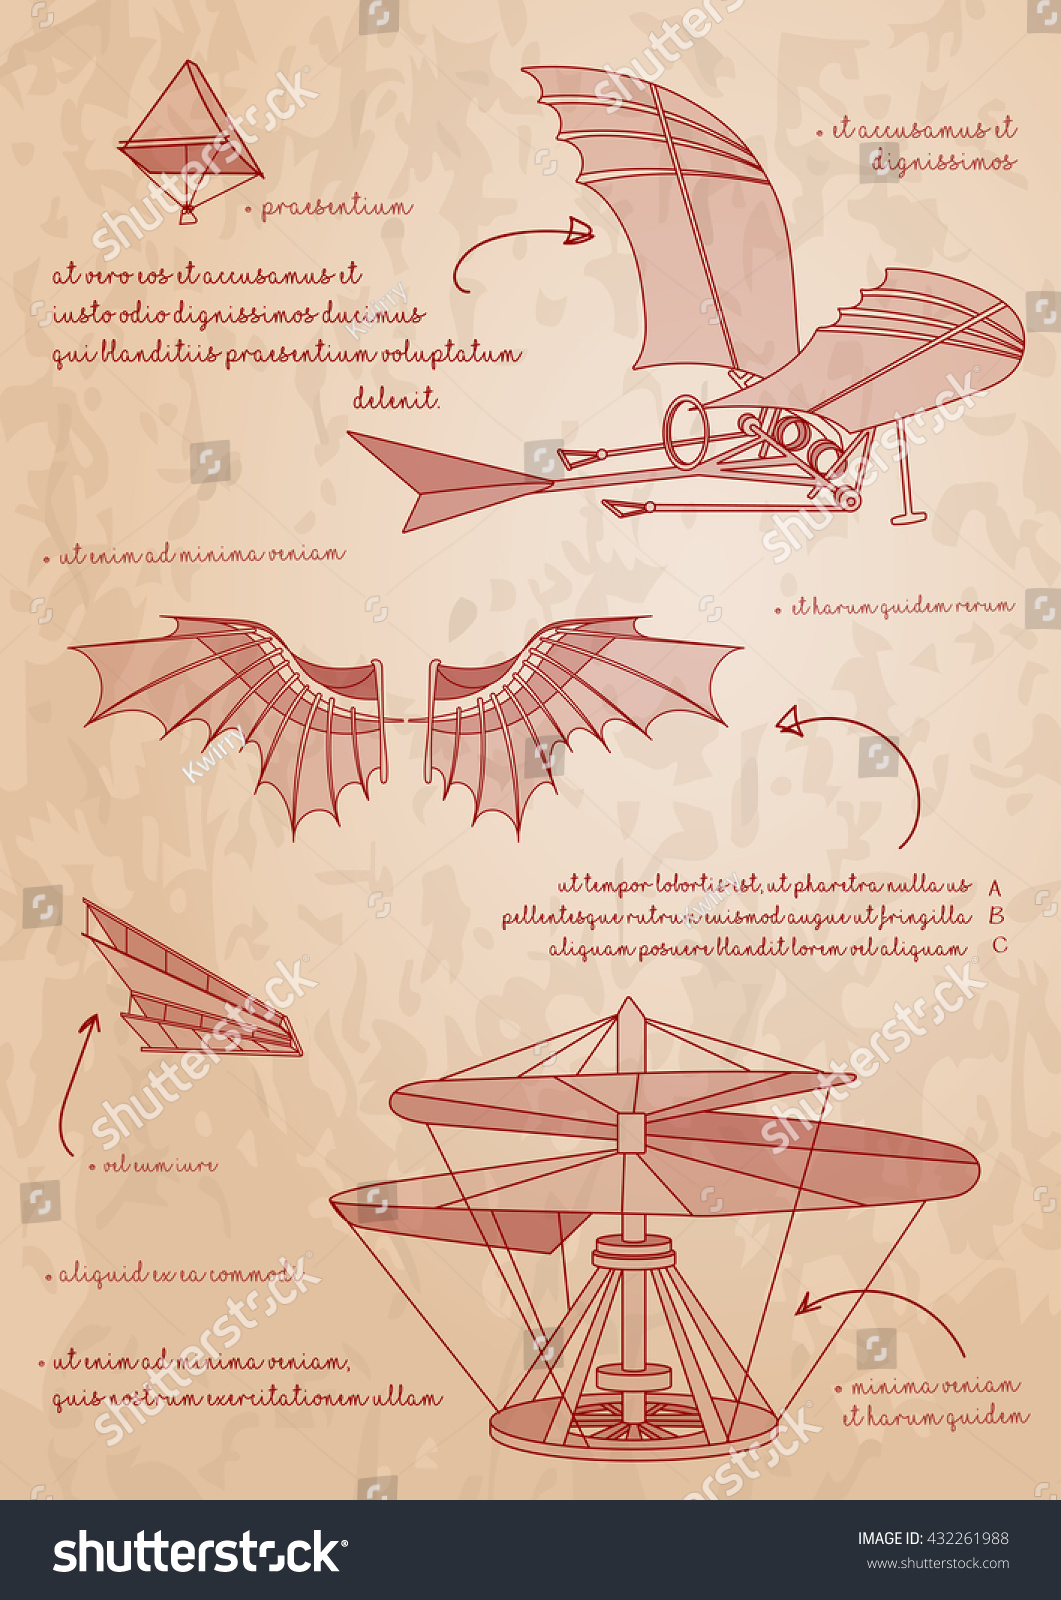 in leonardo da vinci s design for a flying machine he used a as his inspiration